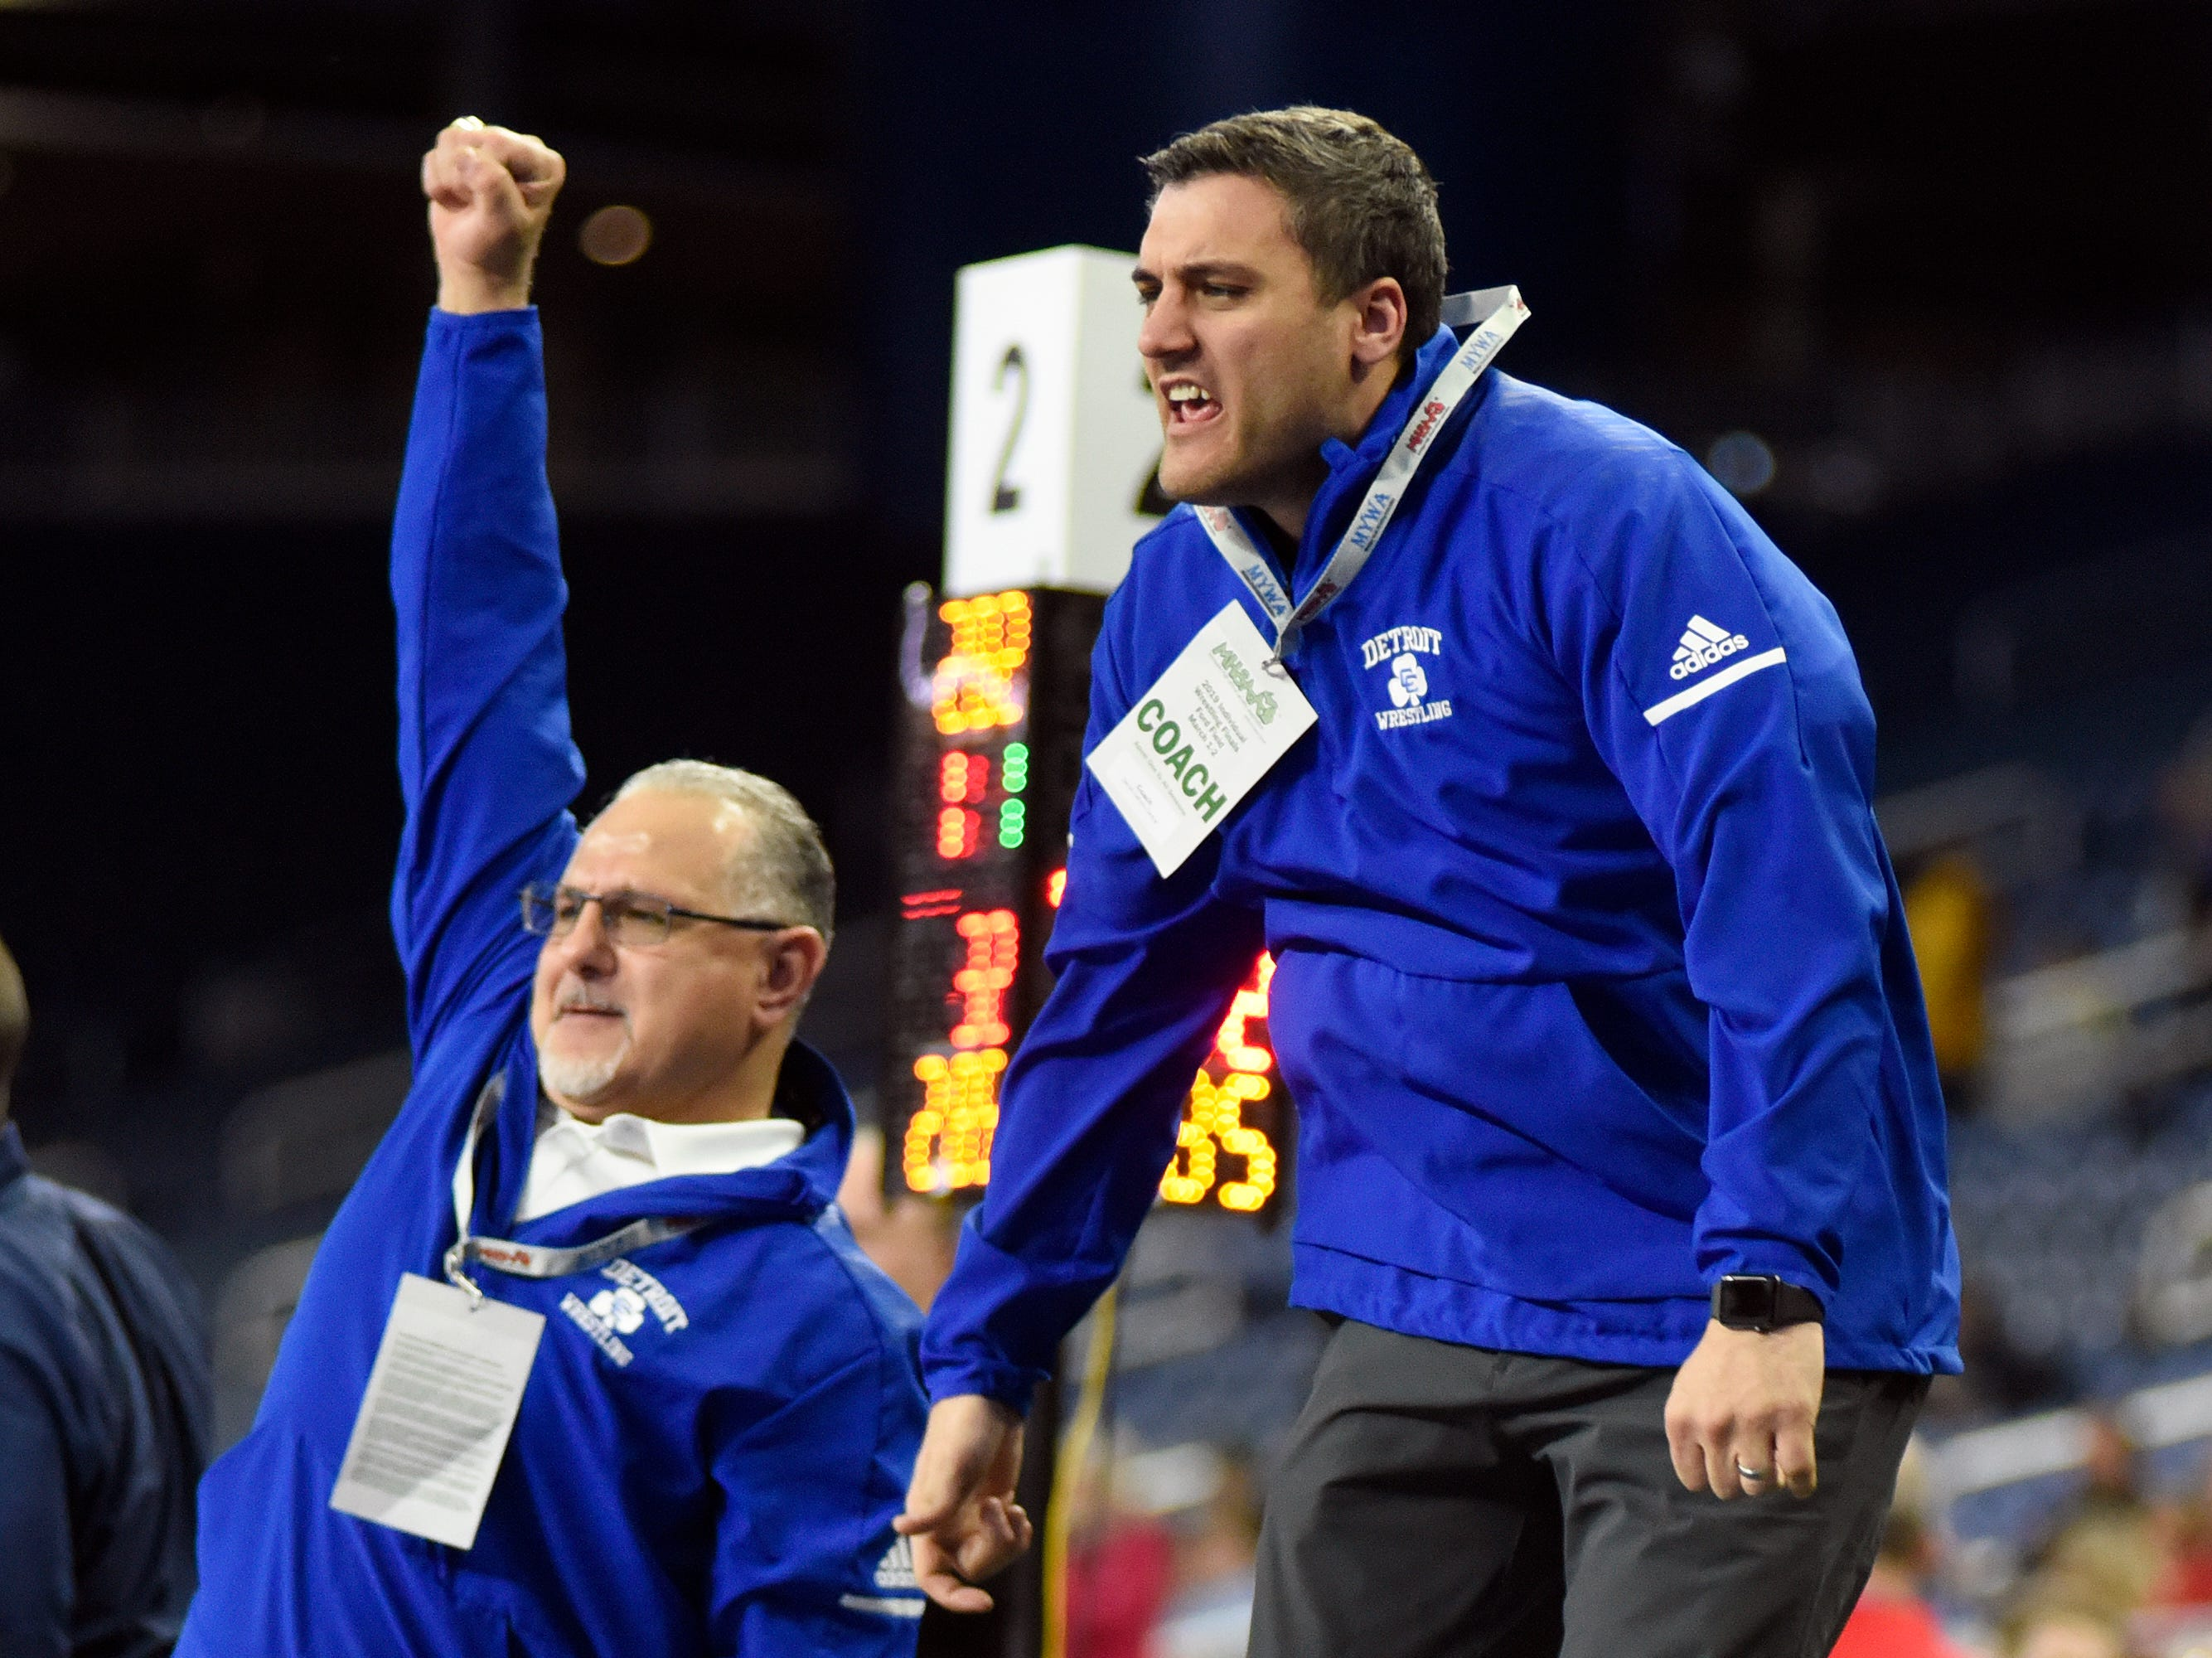 Detroit Catholic Central coaches Sam Amine, left, and Anthony Biondo react as Steven Kolcheff pins Belleville wrestler Jaden Rice in a 285-pound semifinal match.